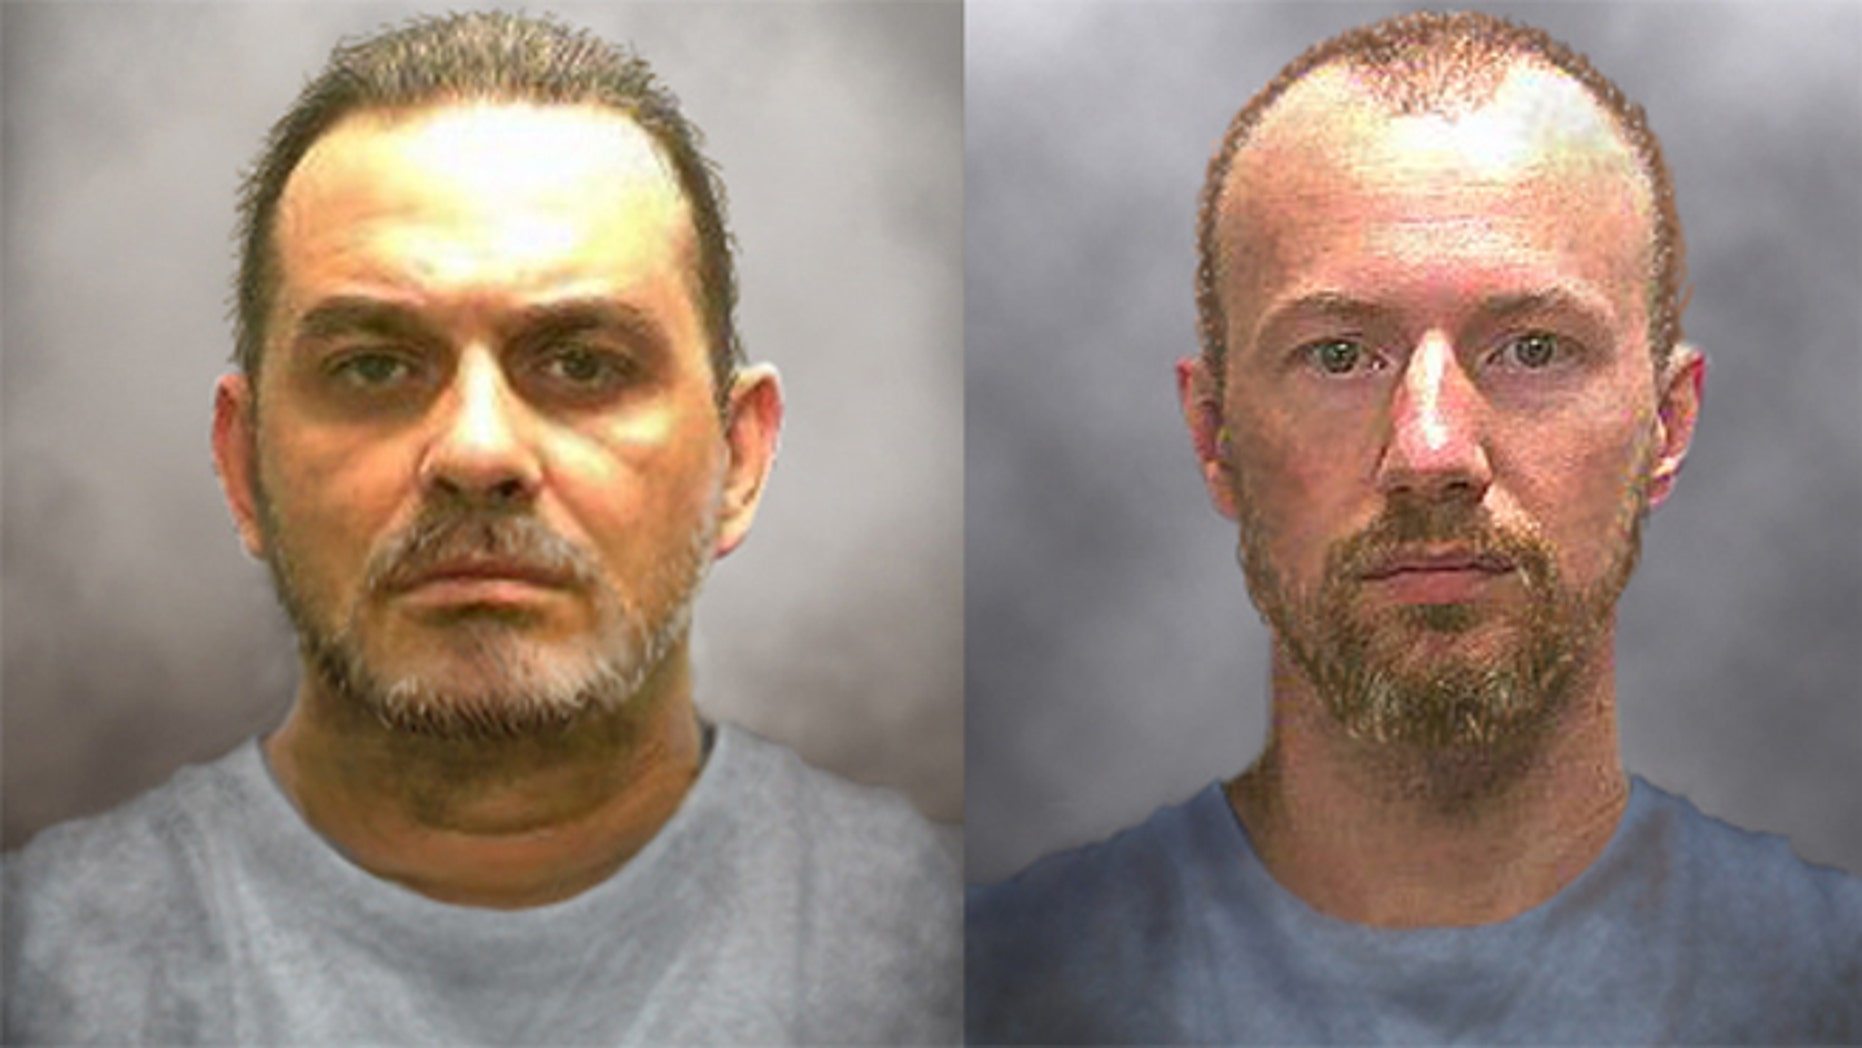 Authorities released time-progressed photos of what escaped inmates Richard Matt, left, and David Sweat, right, might look like after 10 days on the run.